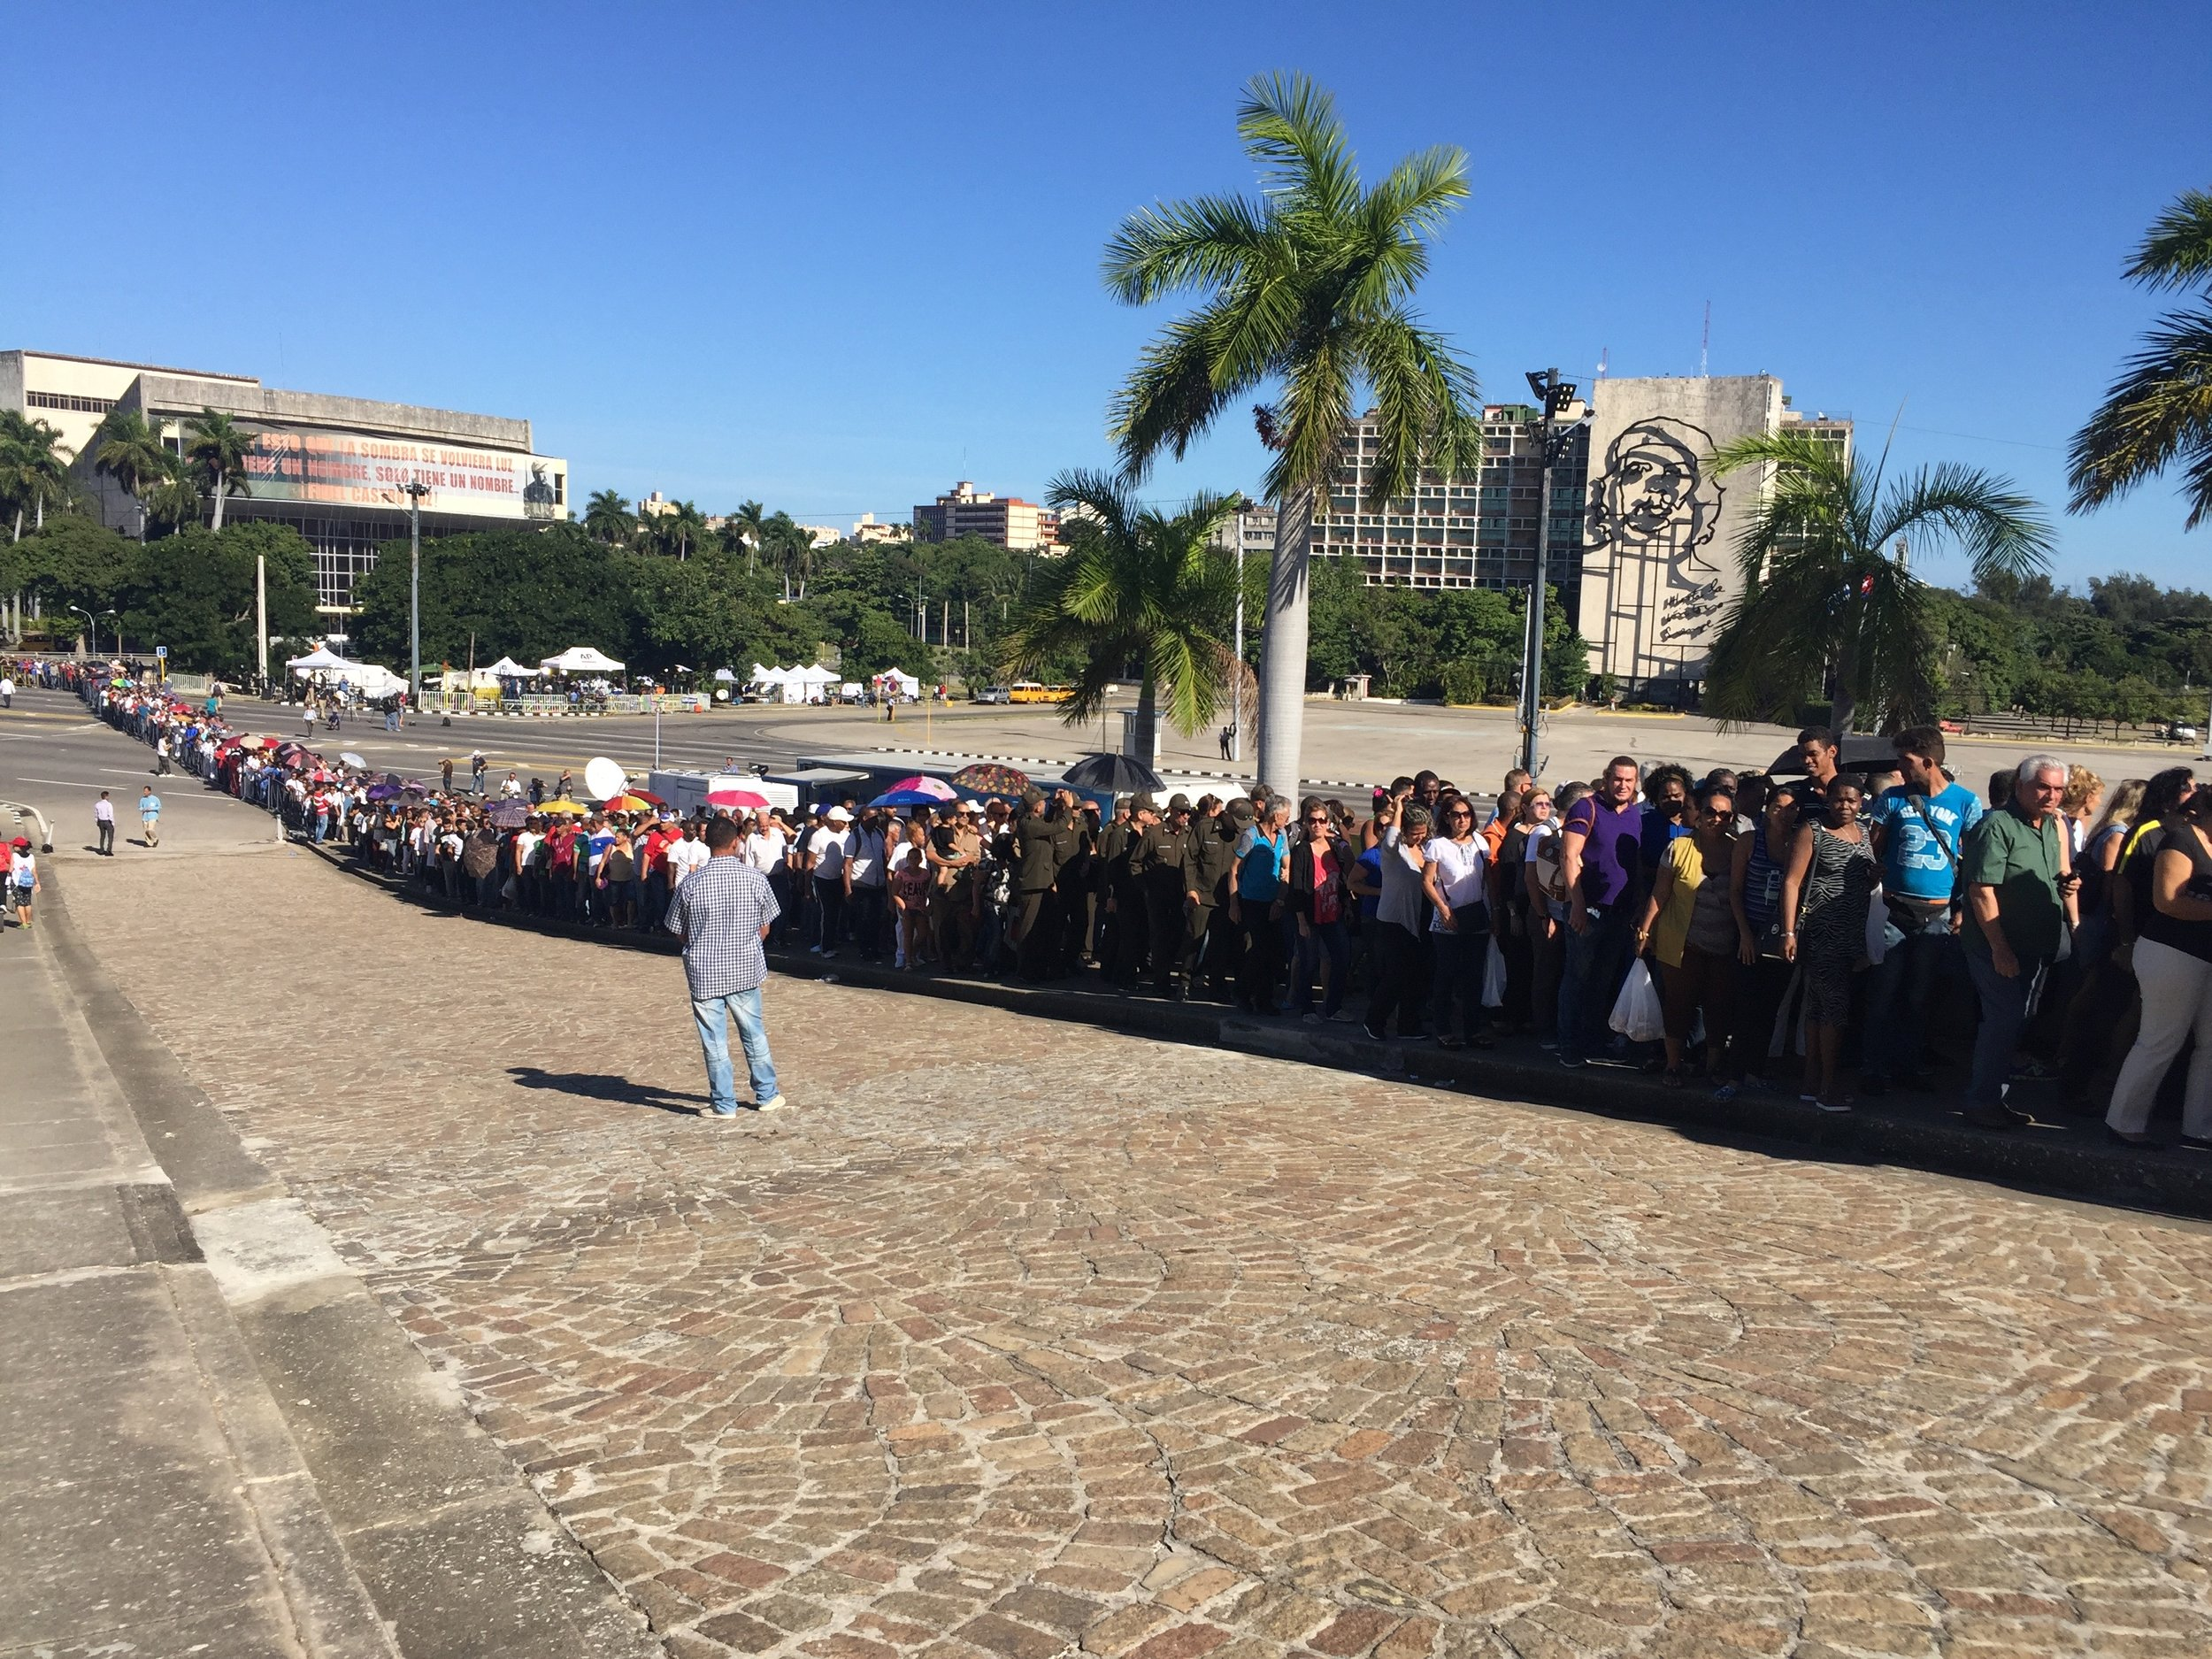 Part of the line waiting to pay respects to Fidel at Havana's Plaza de la Revolución.